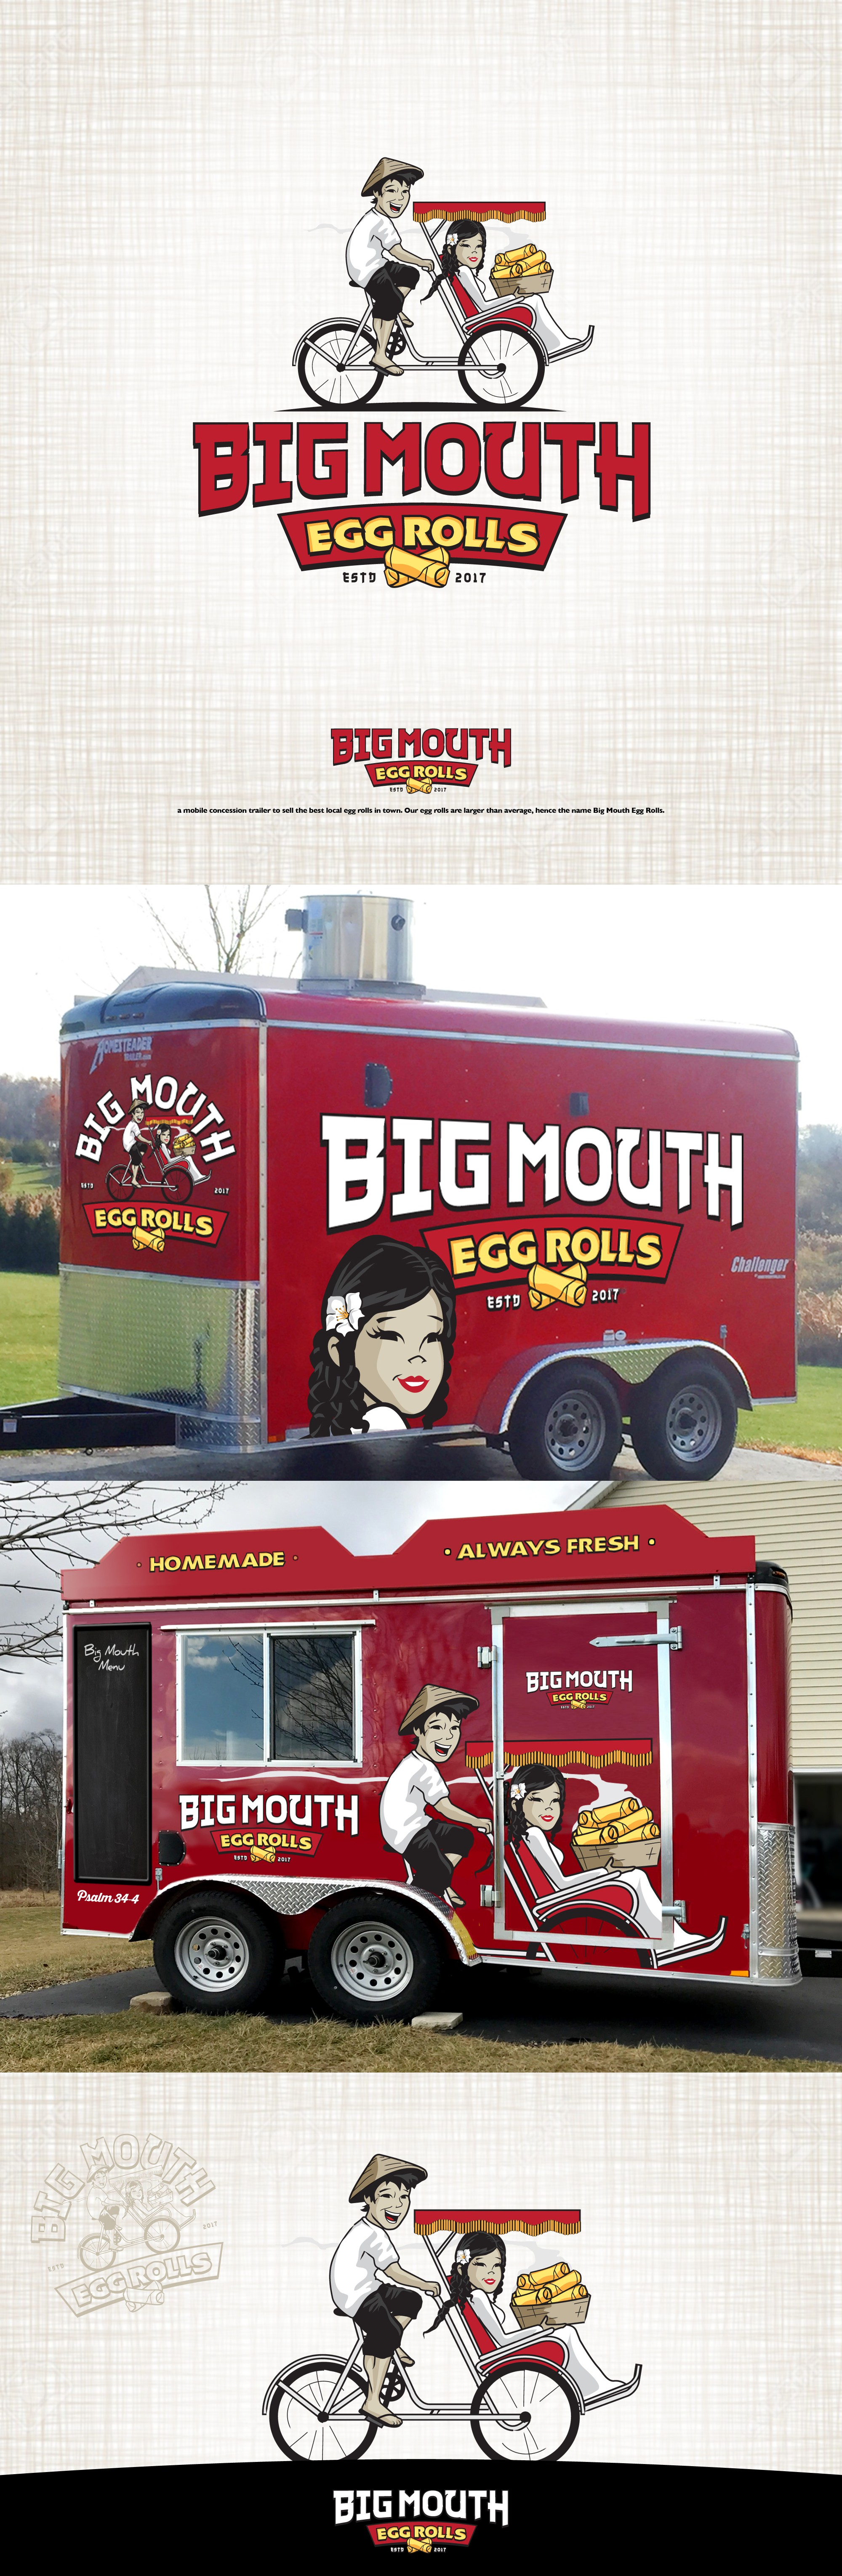 Design an eye catching, classy yet fun food trailer wrap to rival some of the best out there.